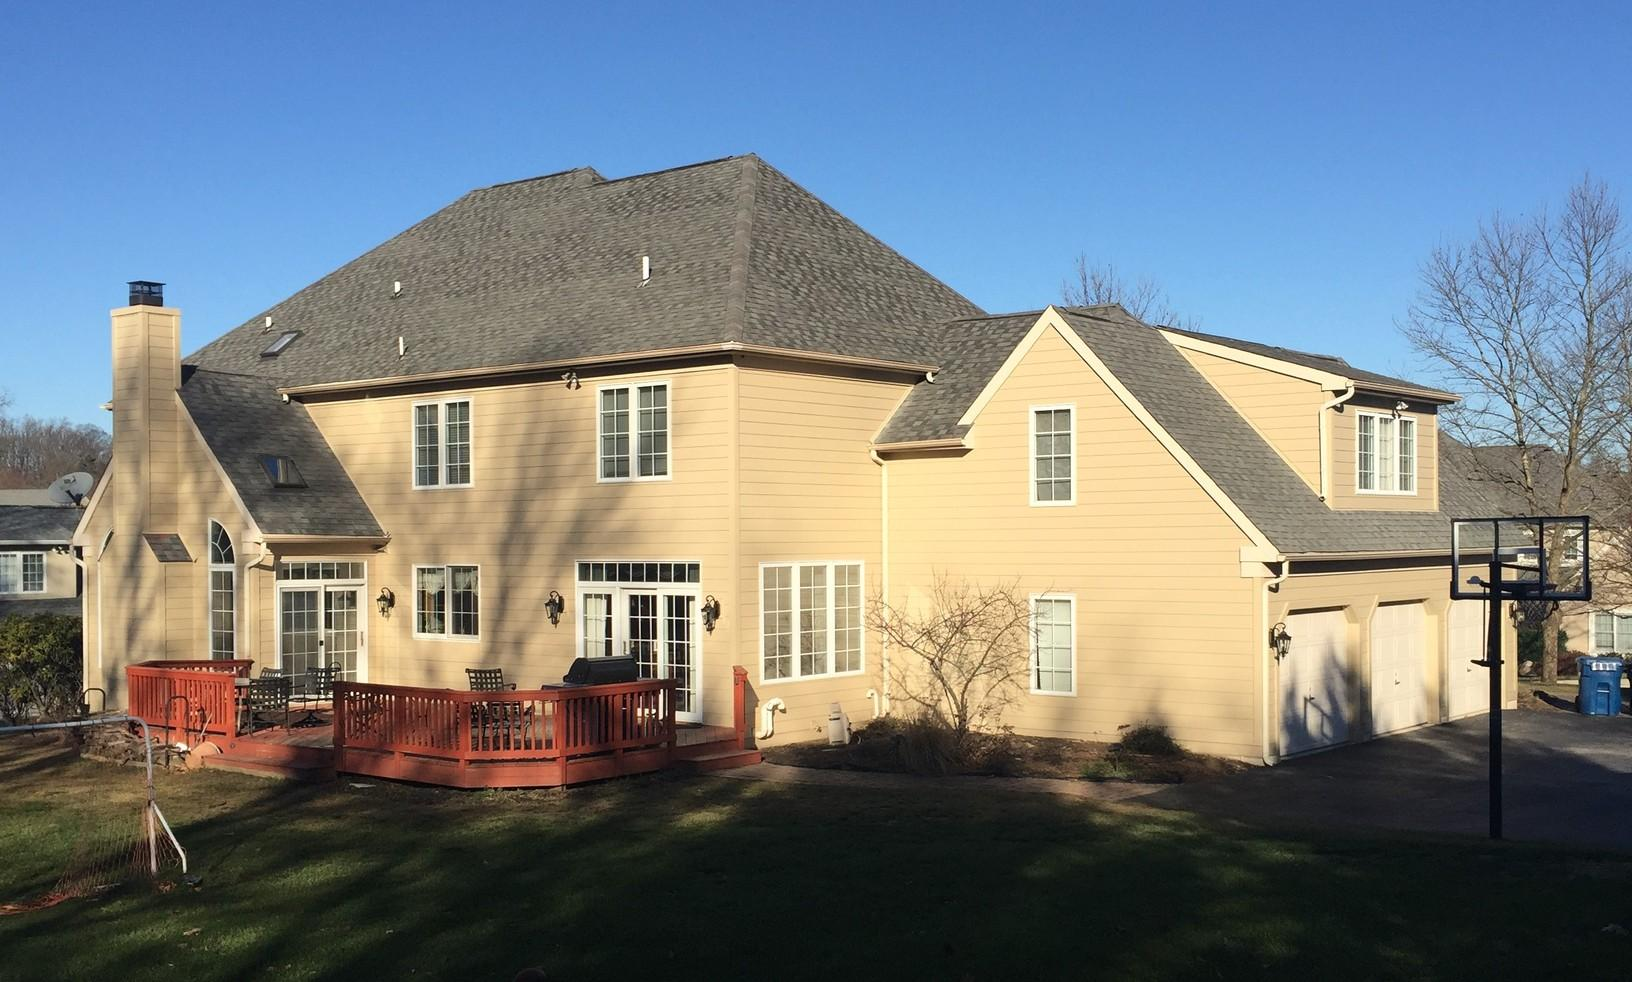 Stucco Remediation & James Hardie Siding Installation in Malvern, PA - After Photo